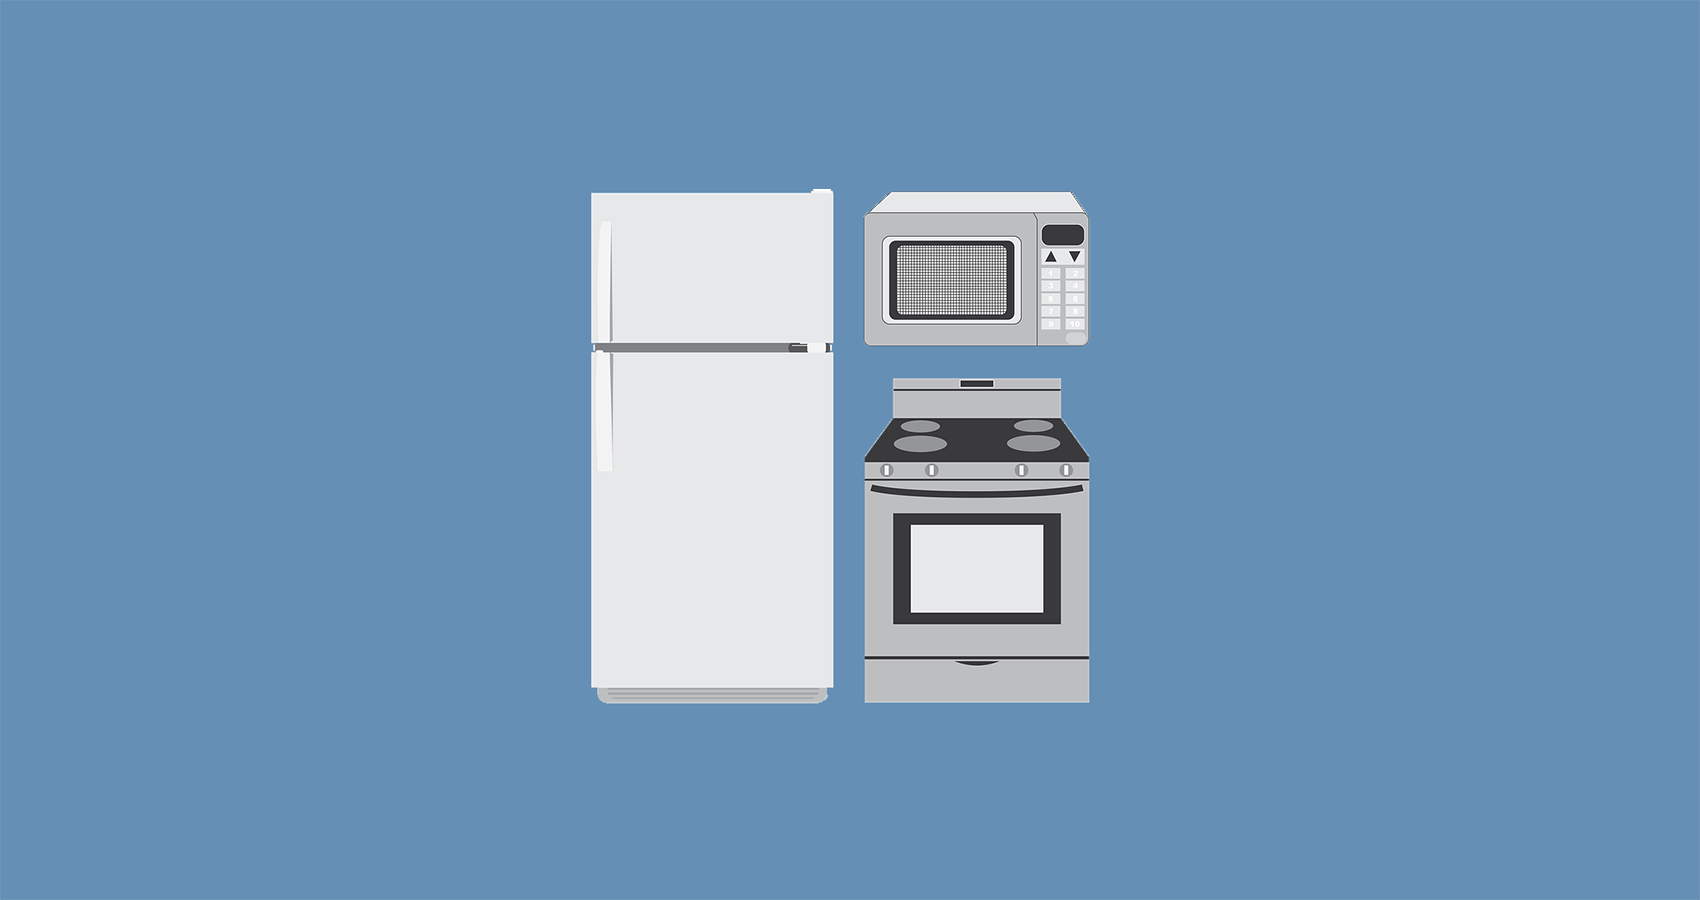 How Do I Recycle Appliances or White Goods?